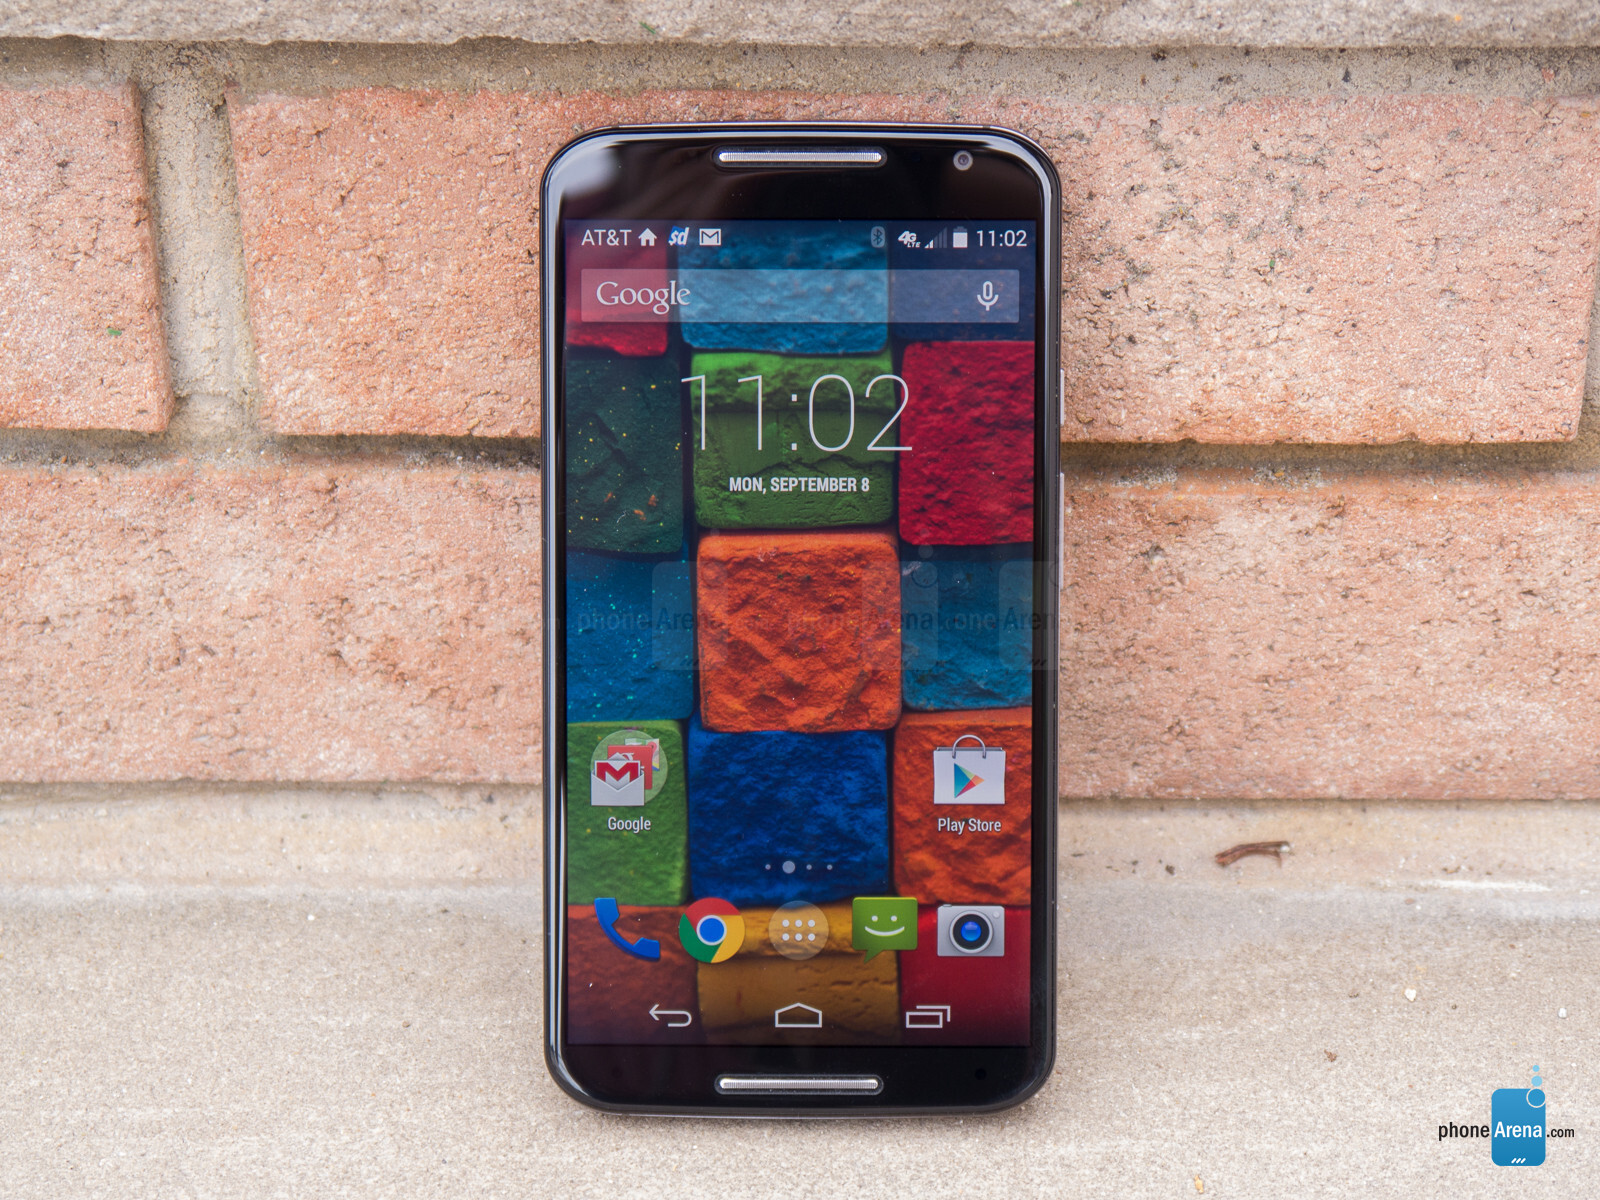 Over 10 million Motorola smartphones were sold in Q4 2014